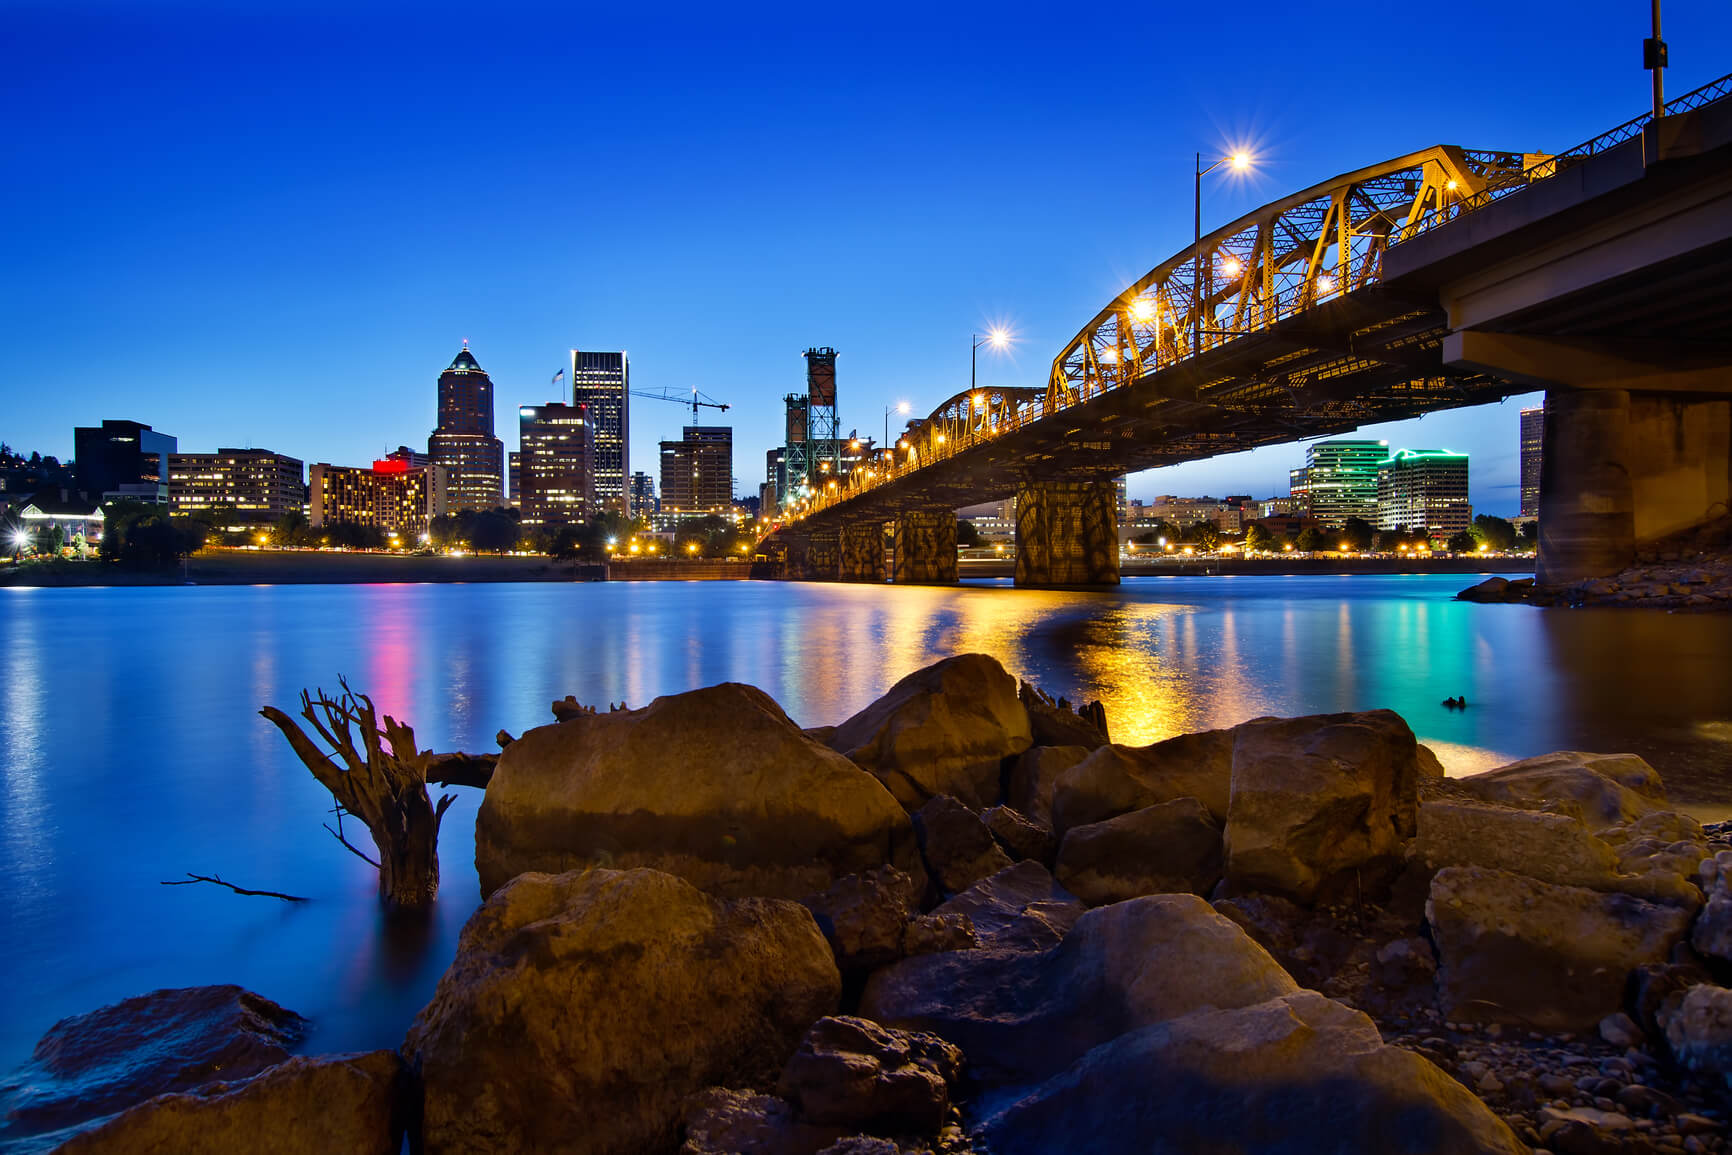 Non-stop from Washington DC to Portland, Oregon (& vice versa) for only $148 roundtrip (Oct-Dec dates)